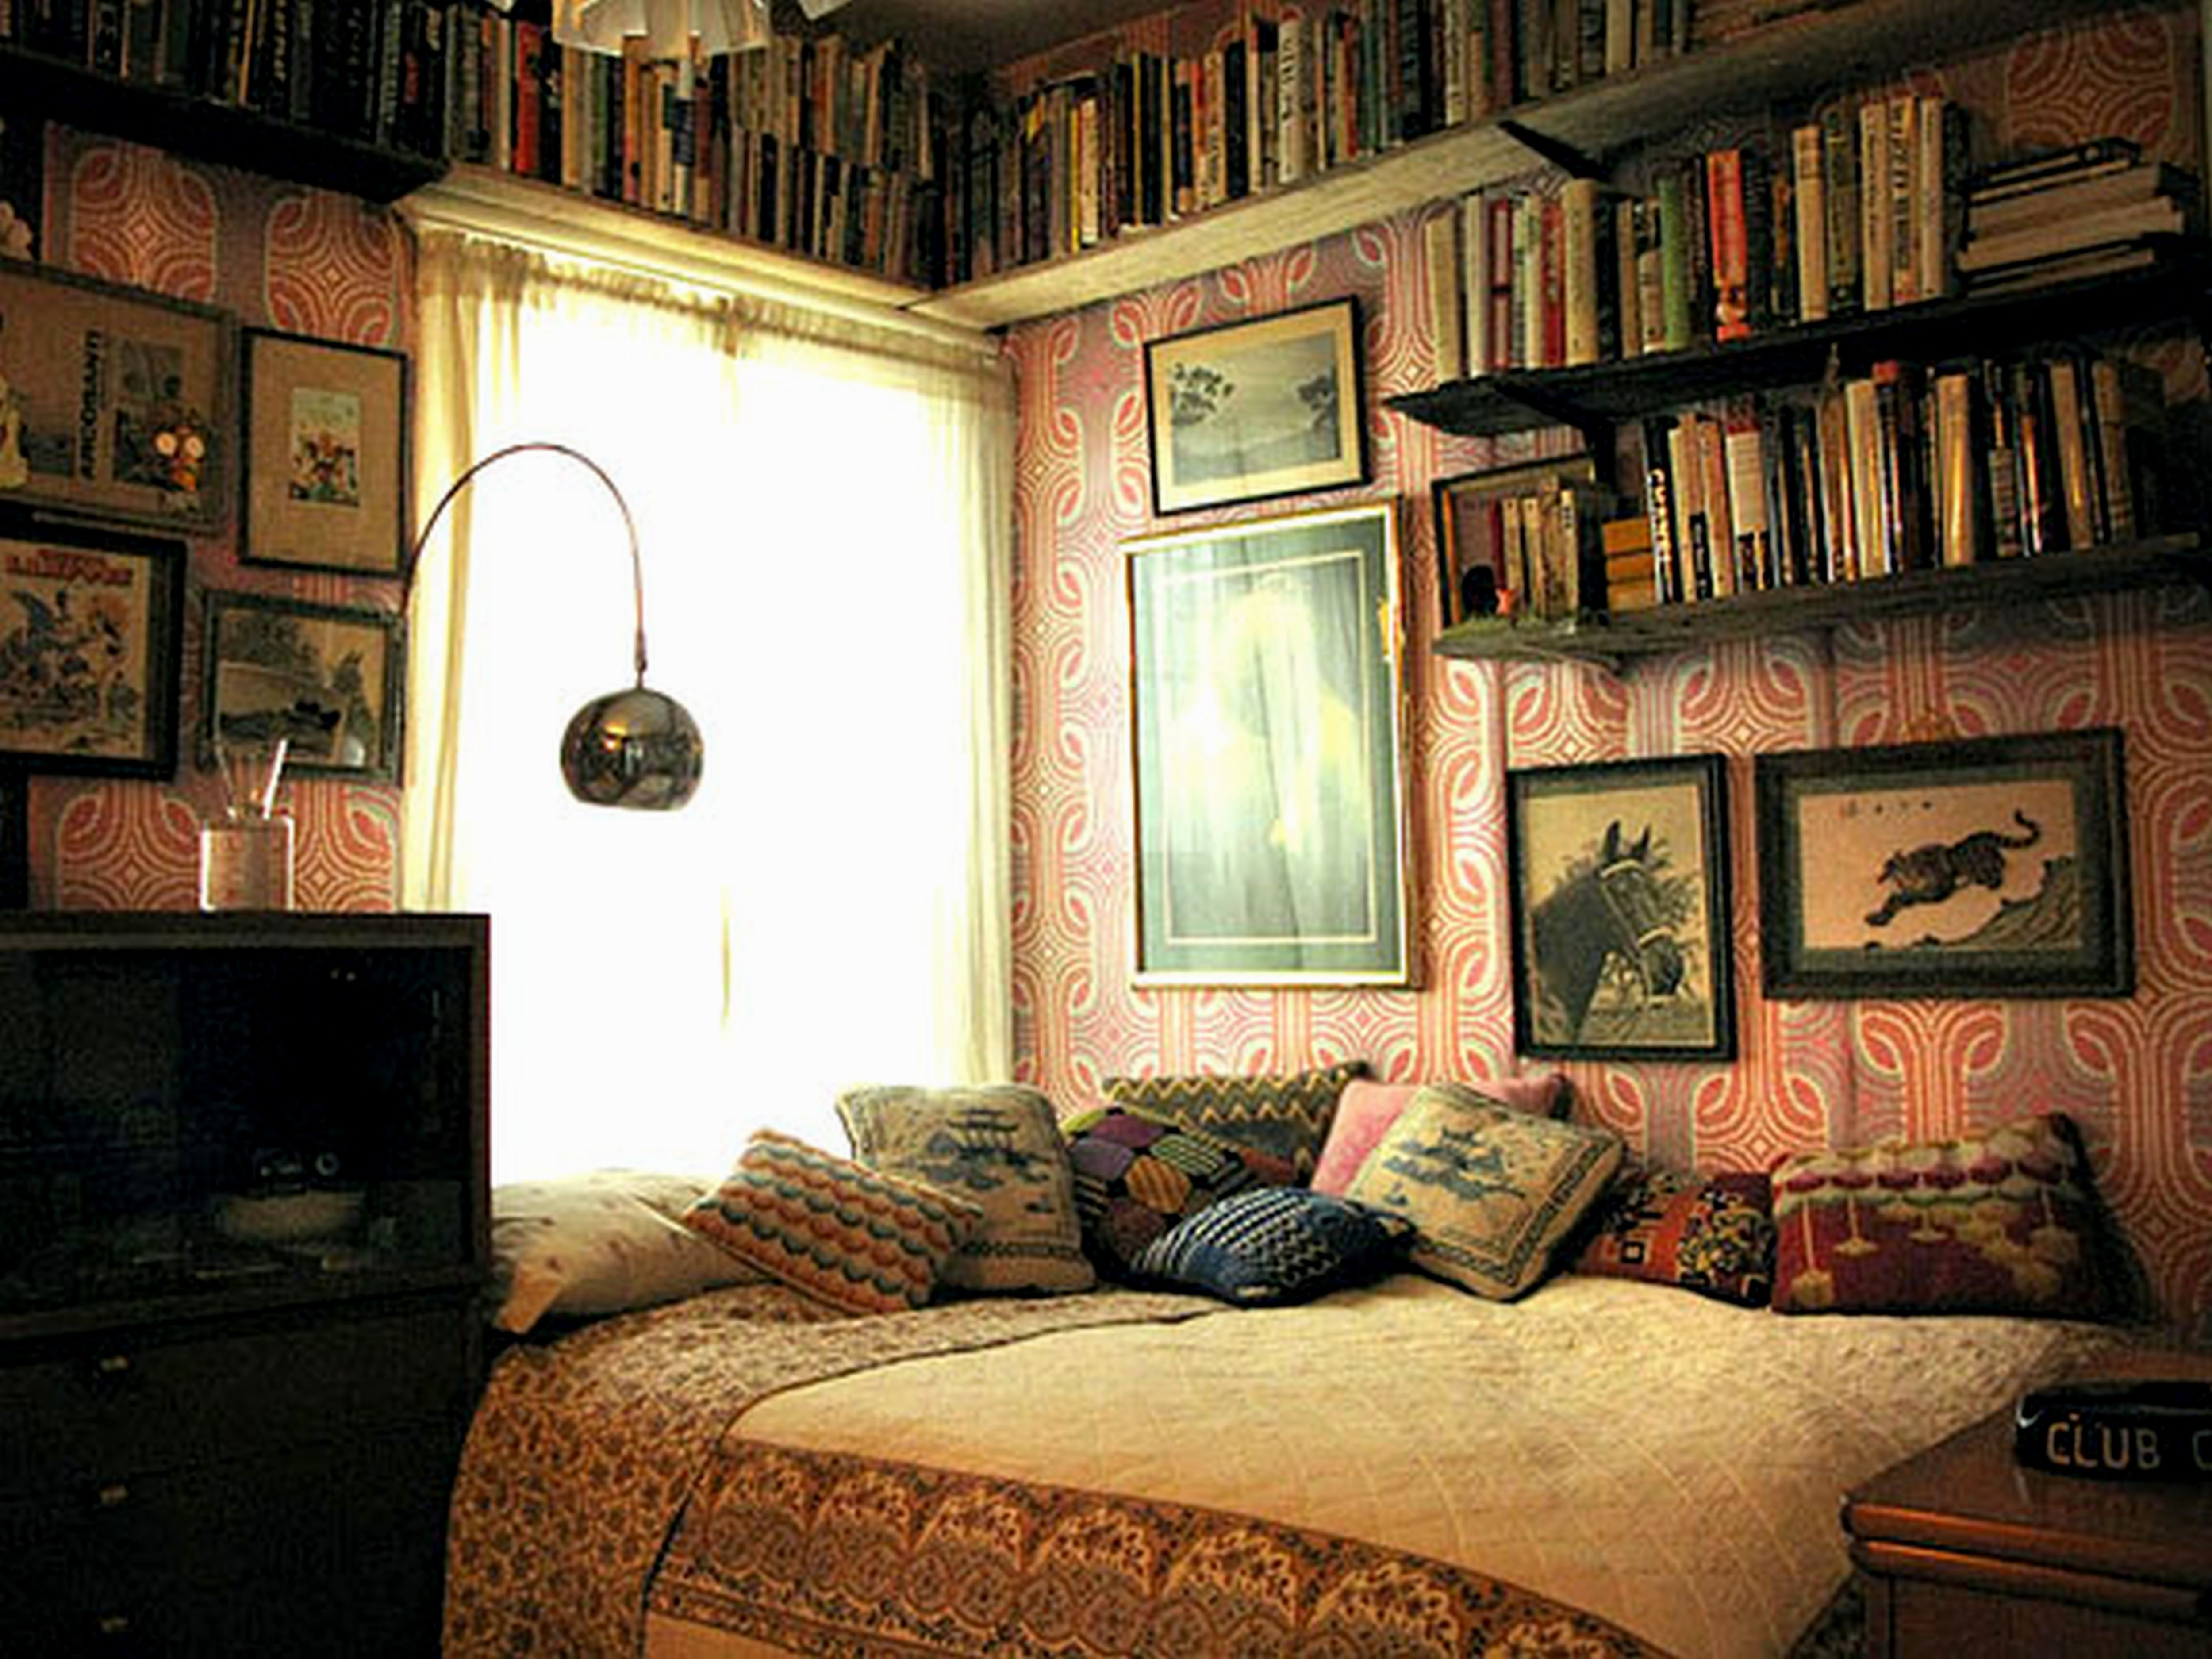 Vintage Decor For Small Room